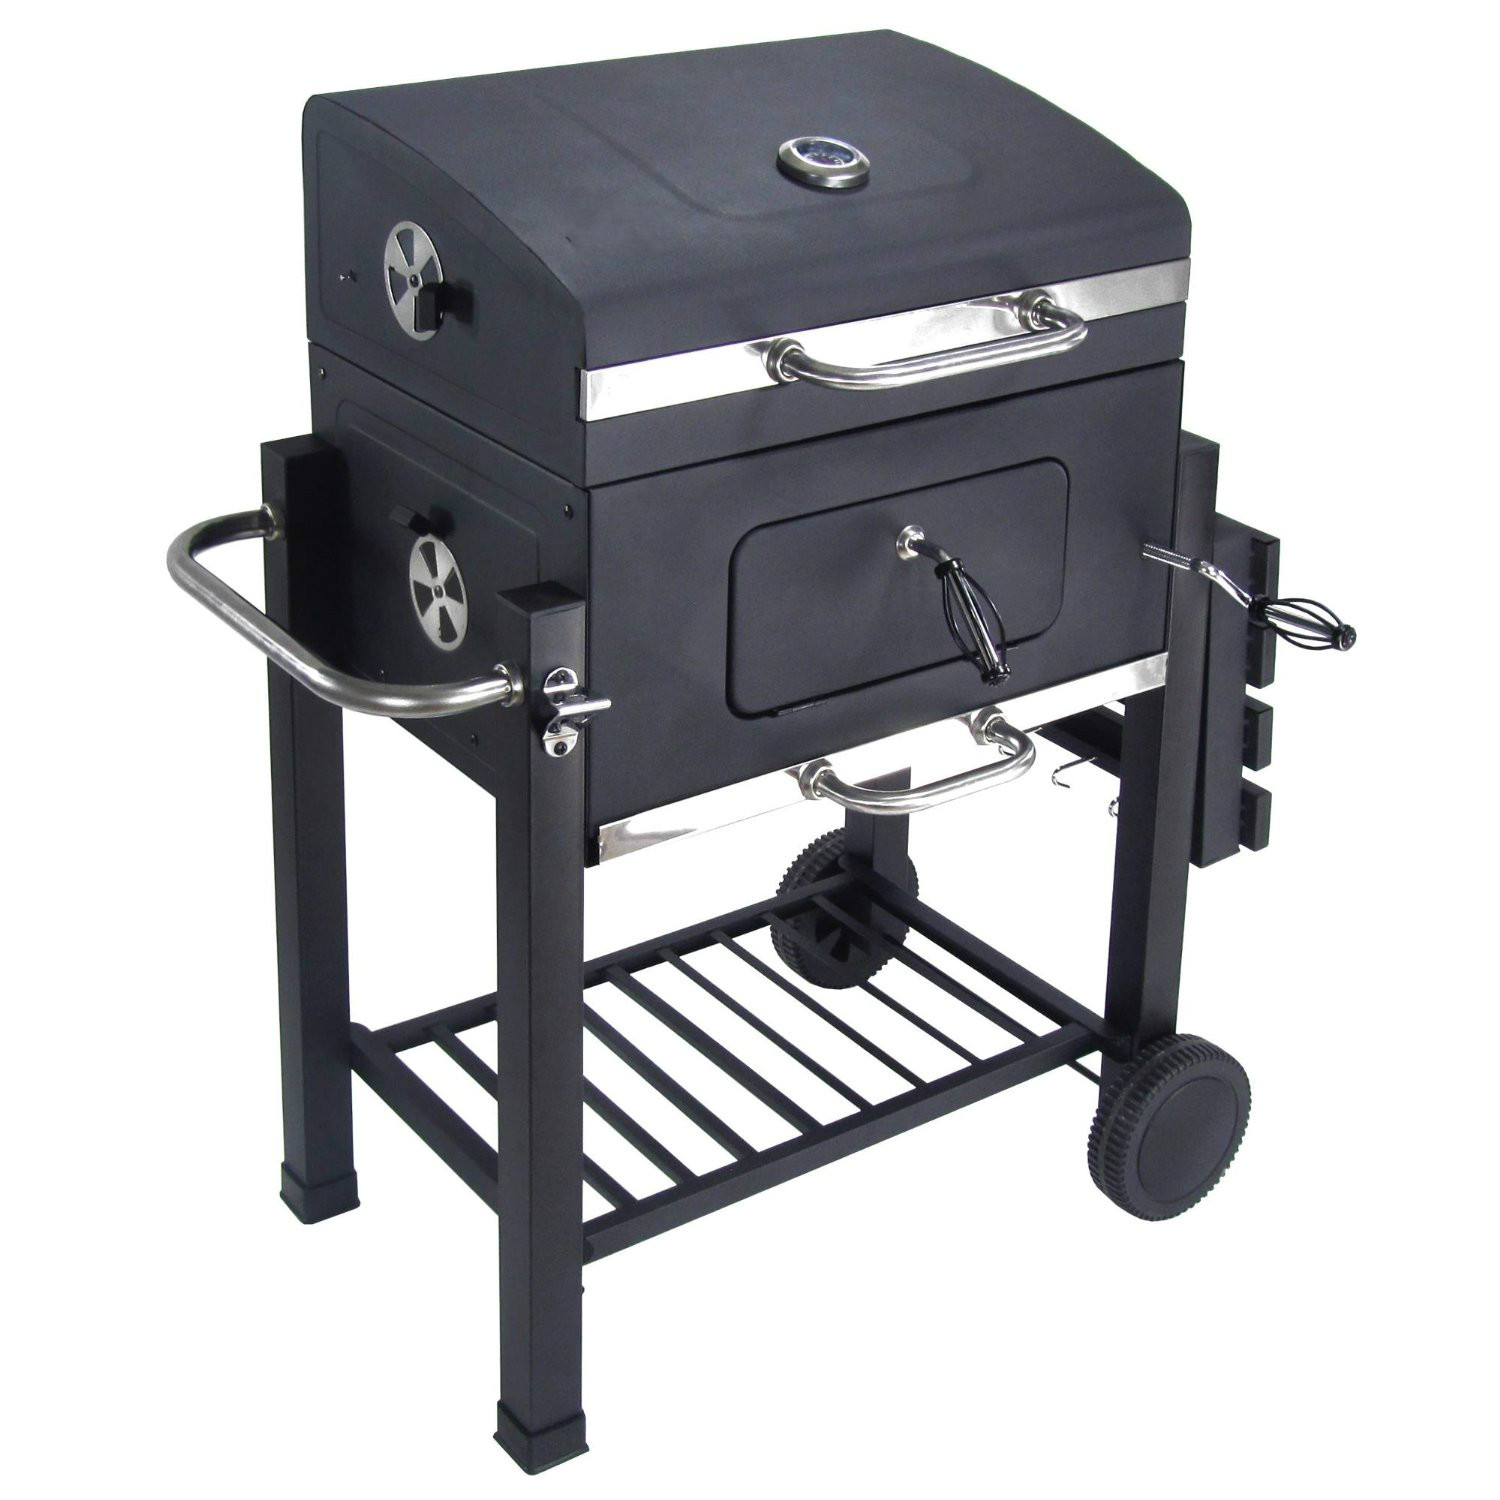 Extra Large Heavy Duty A Carbone BARBECUE Somker Grill All'aperto Per Barbecue